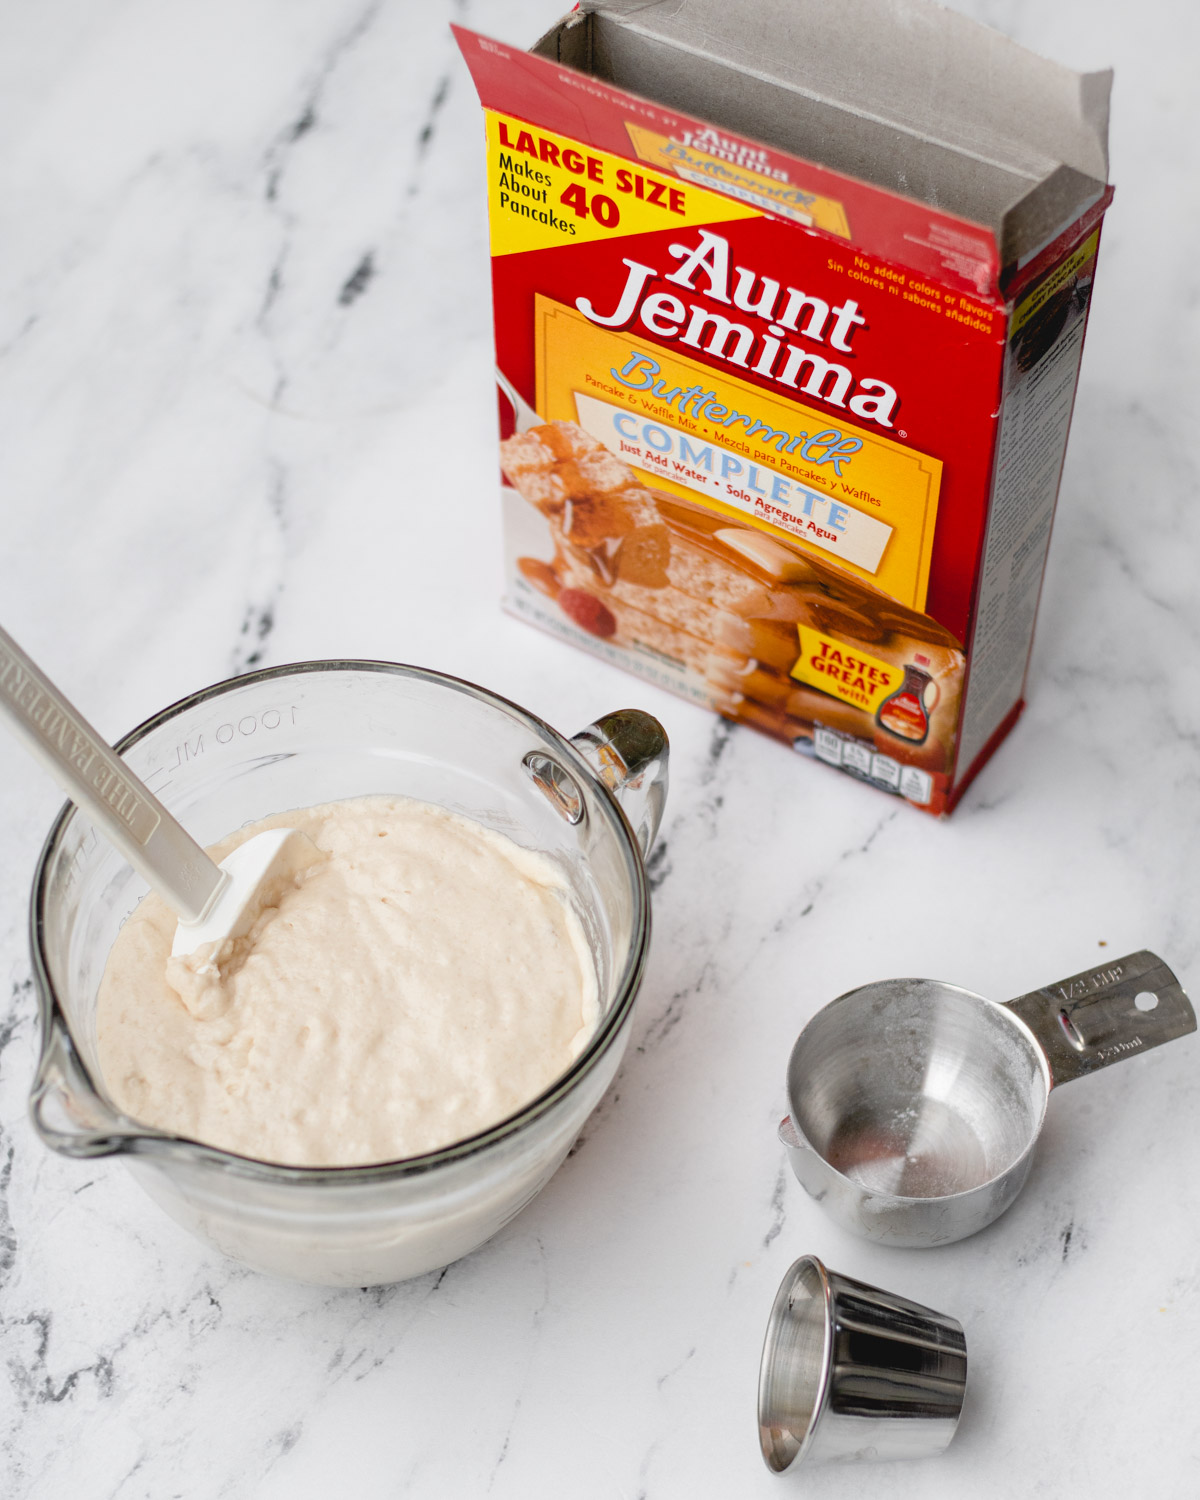 Mixing batter for funnel cakes.